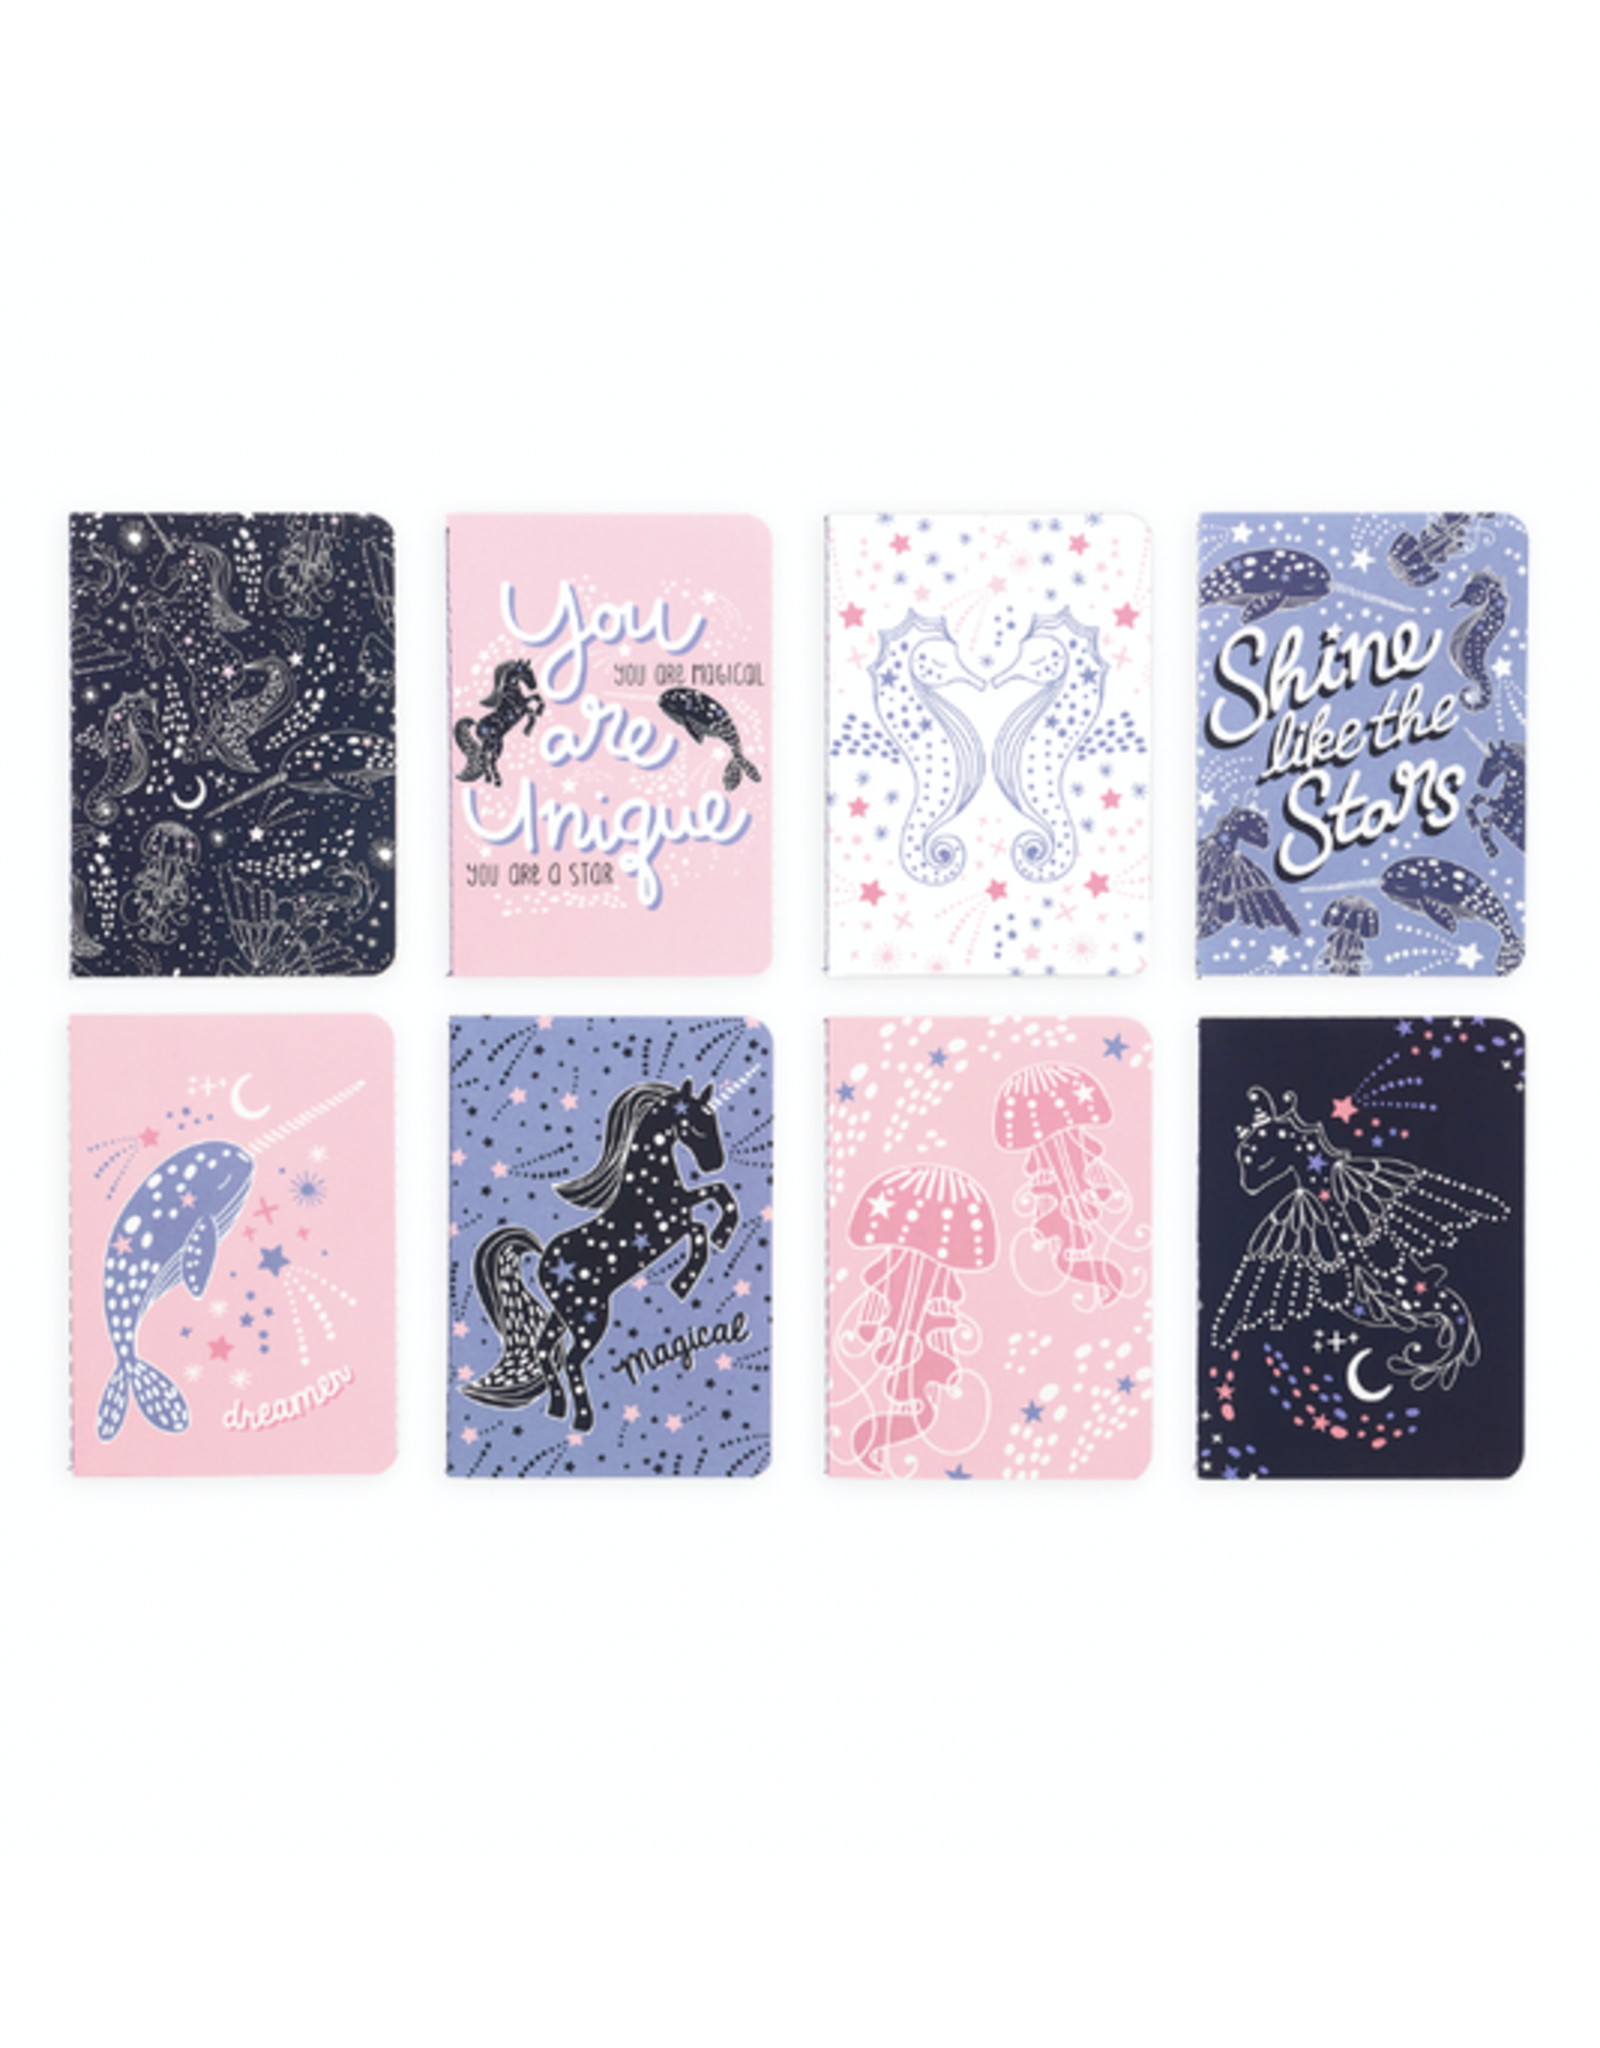 Ooly Mini Pocket Pal Journals - Celestial Stars